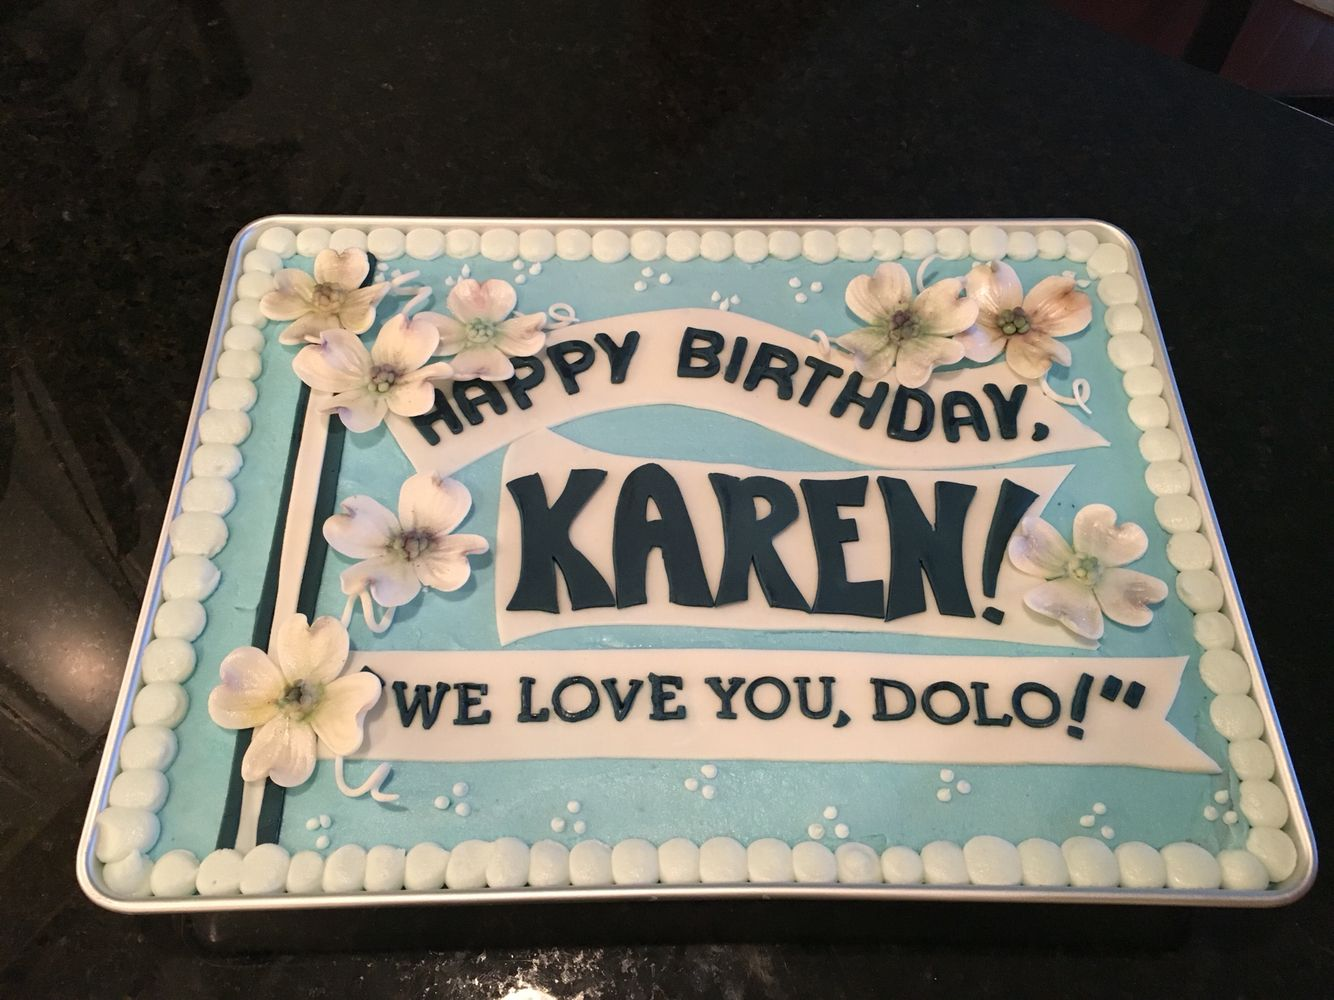 Happy Birthday Karenipping Your Cake To Youhope It Arrives